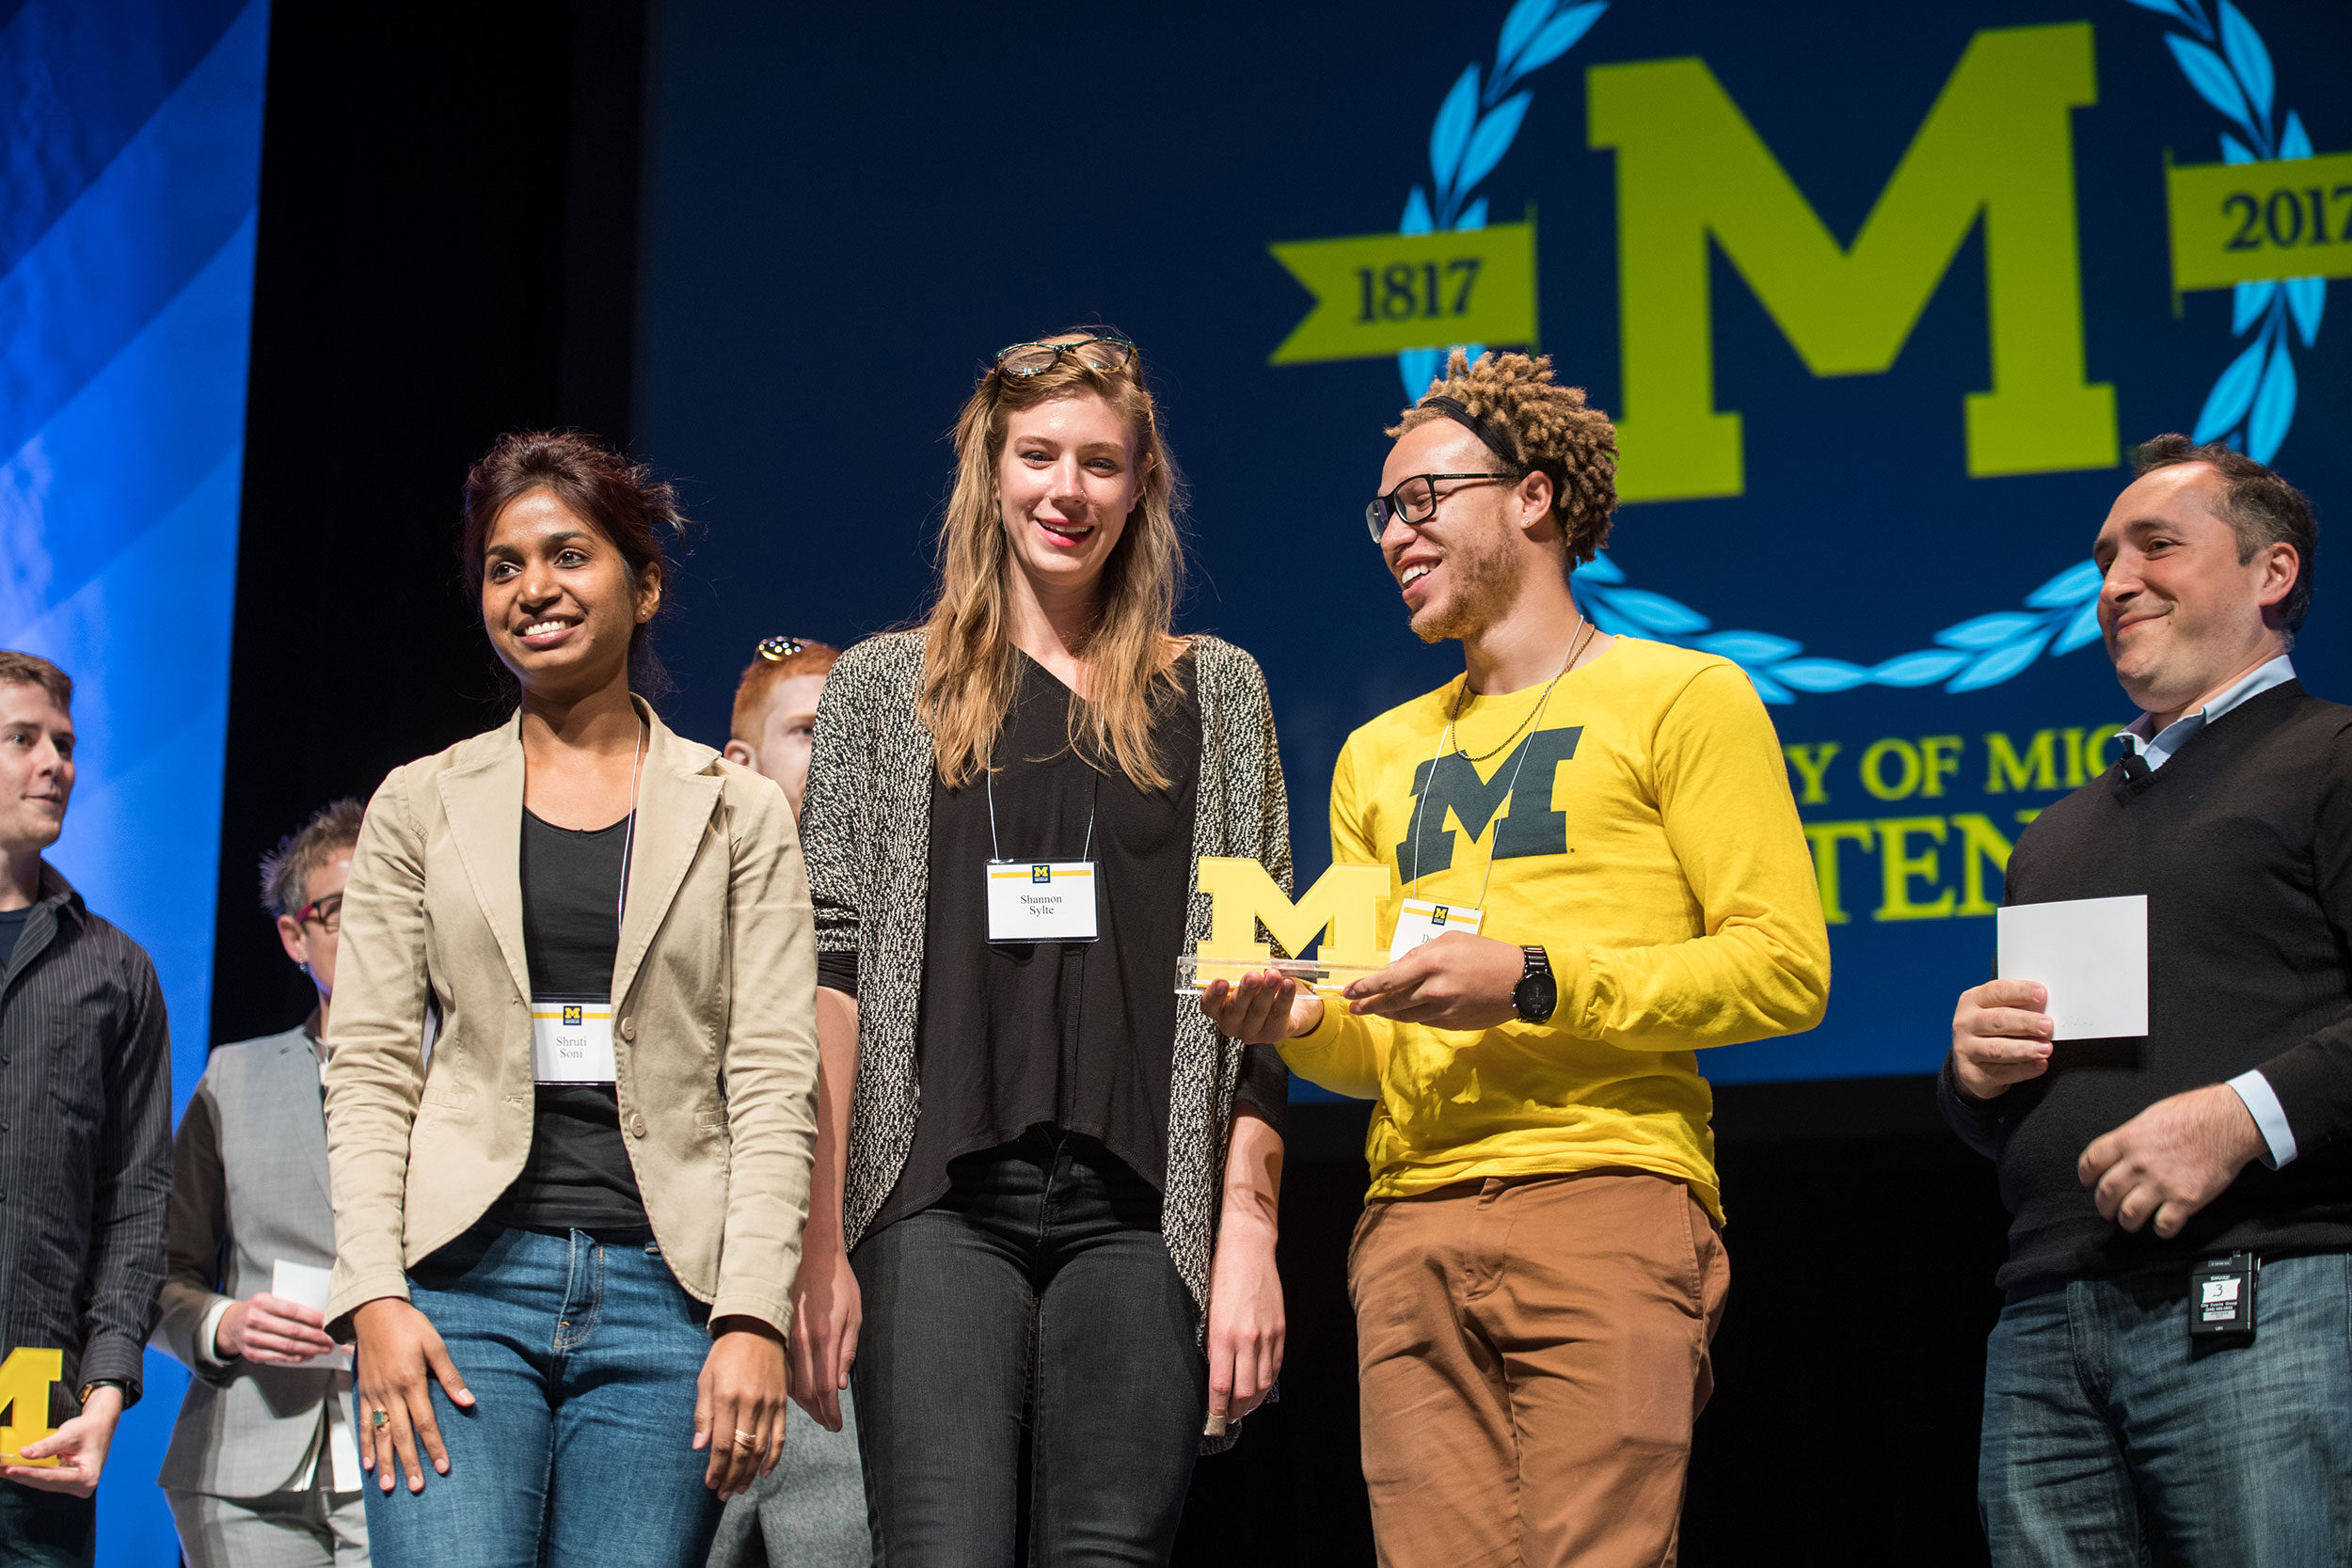 U-M alumnus and Amazon.com Vice President Babak Parviz, right, presents the 1st place design competition award to students, from left, Shruti Soni, Shannon Sylte and Derell Griffin, as part of the President Bicentennial Colloquium Campus of the Future.